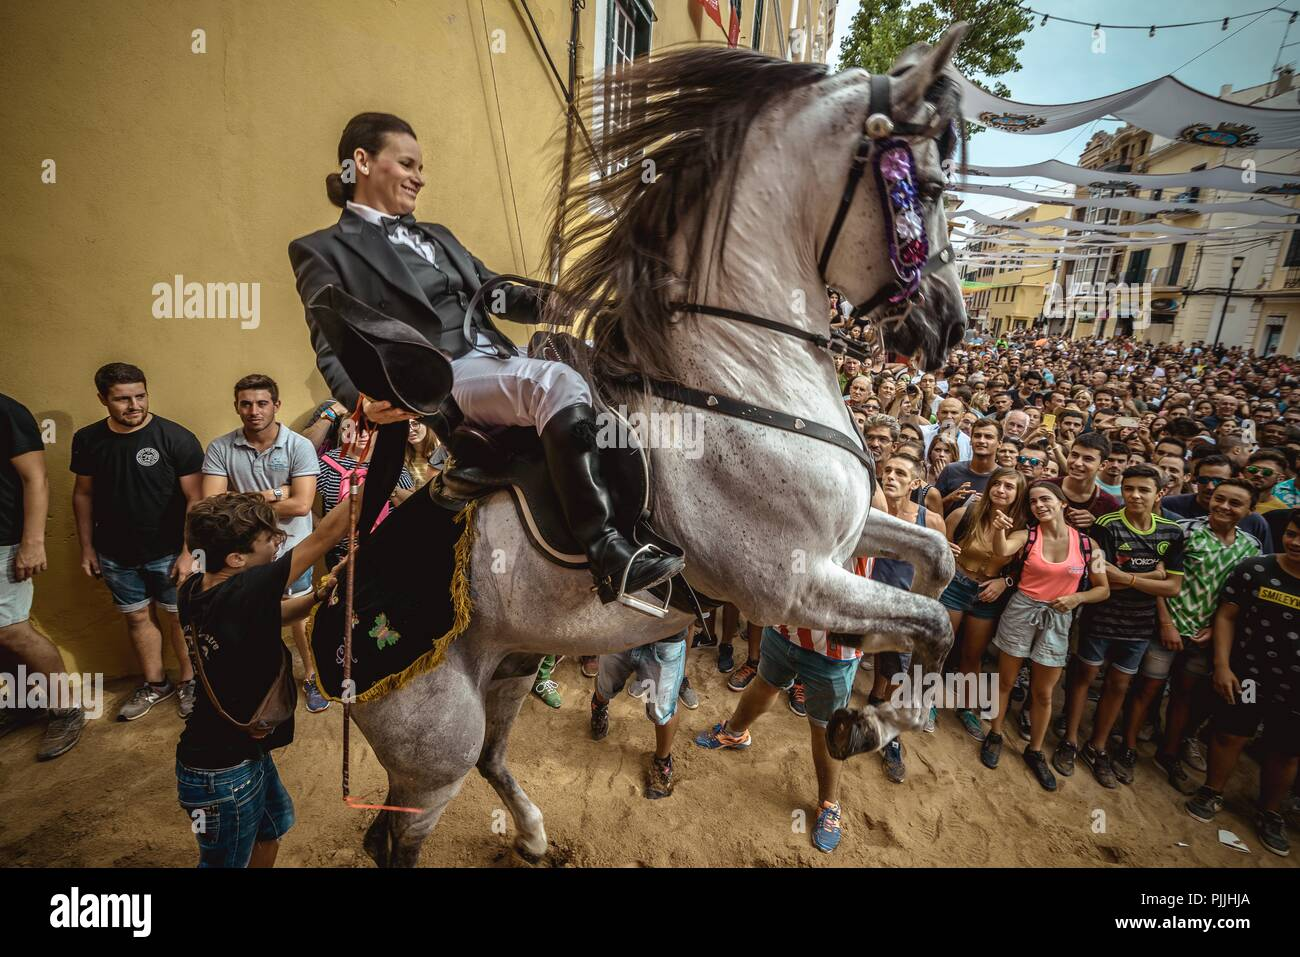 Mahon, Spain. 7 September, 2018:  A 'caixer' (horse rider) rears up on his horse in between the cheering crowd prior to the 'Jaleo' of the traditional Gracia Festival in Mahon, celebrating its patron, Our Lady of Grace Credit: Matthias Oesterle/Alamy Live News - Stock Image